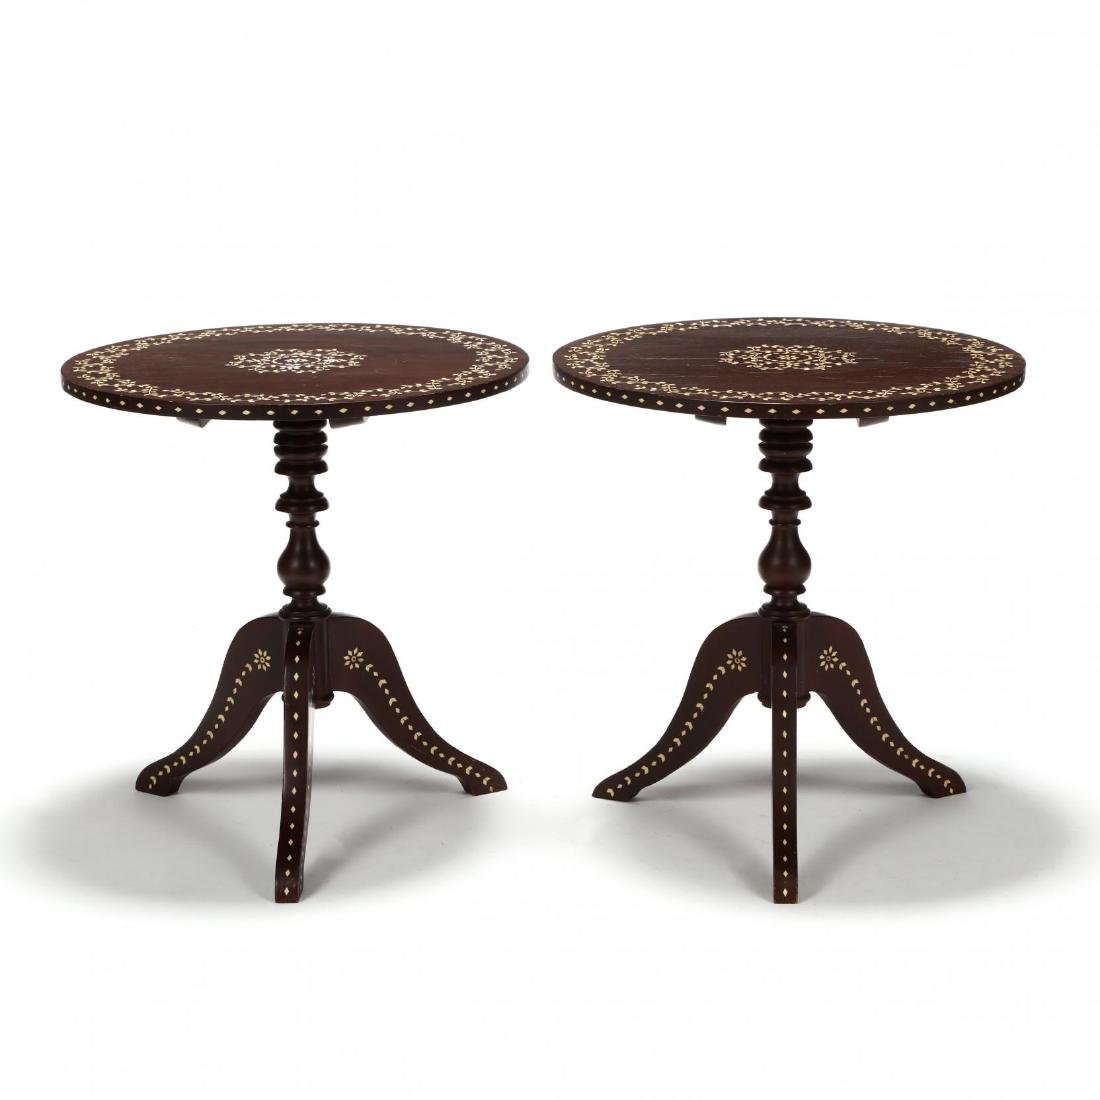 Pair of Anglo Indian Inlaid Tilt Top Tea Tables